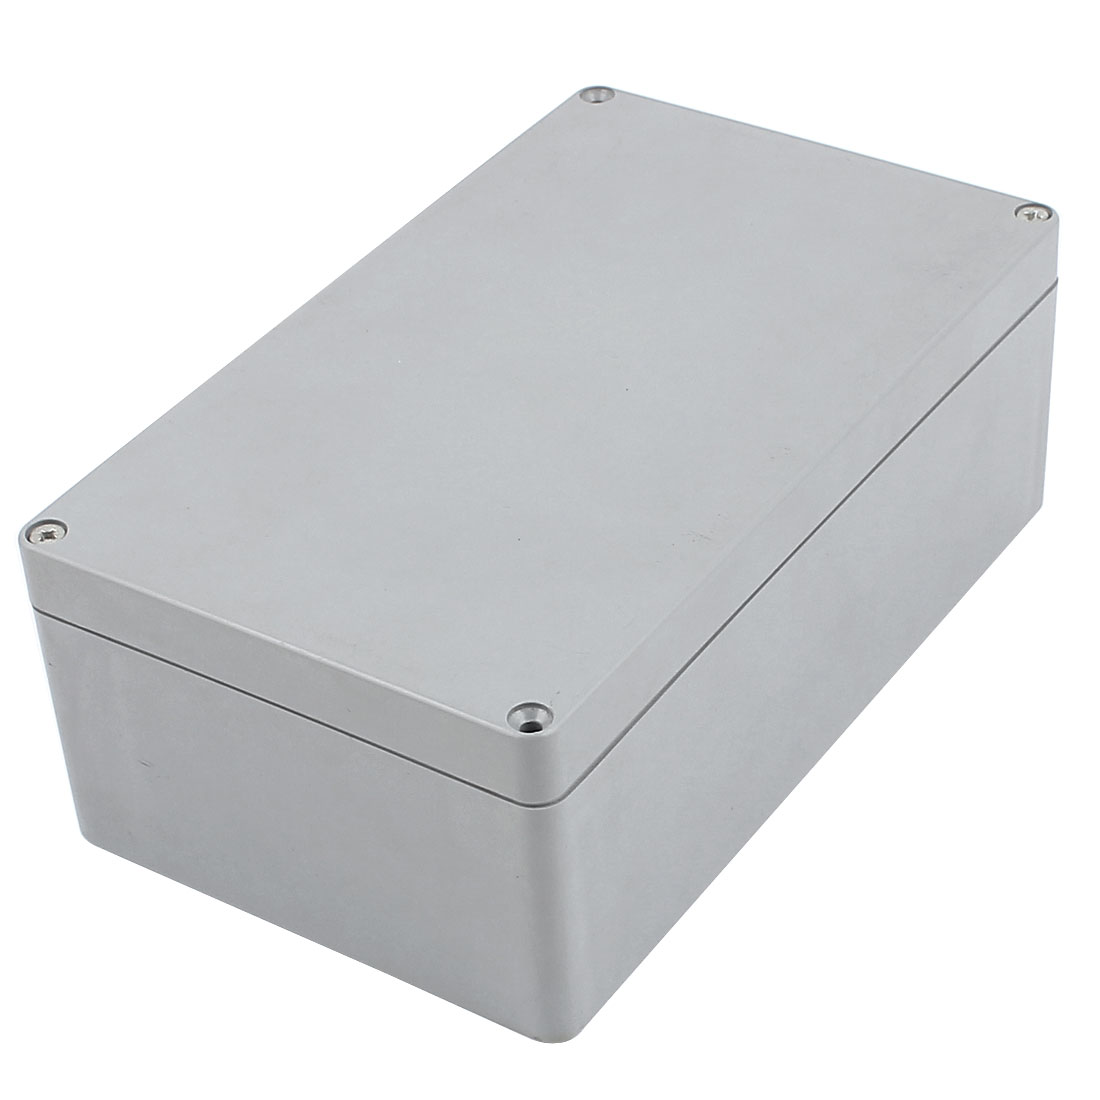 195mm x 115mm x 75mm Dustproof IP65 Sealed DIY Joint Electrical Junction Box